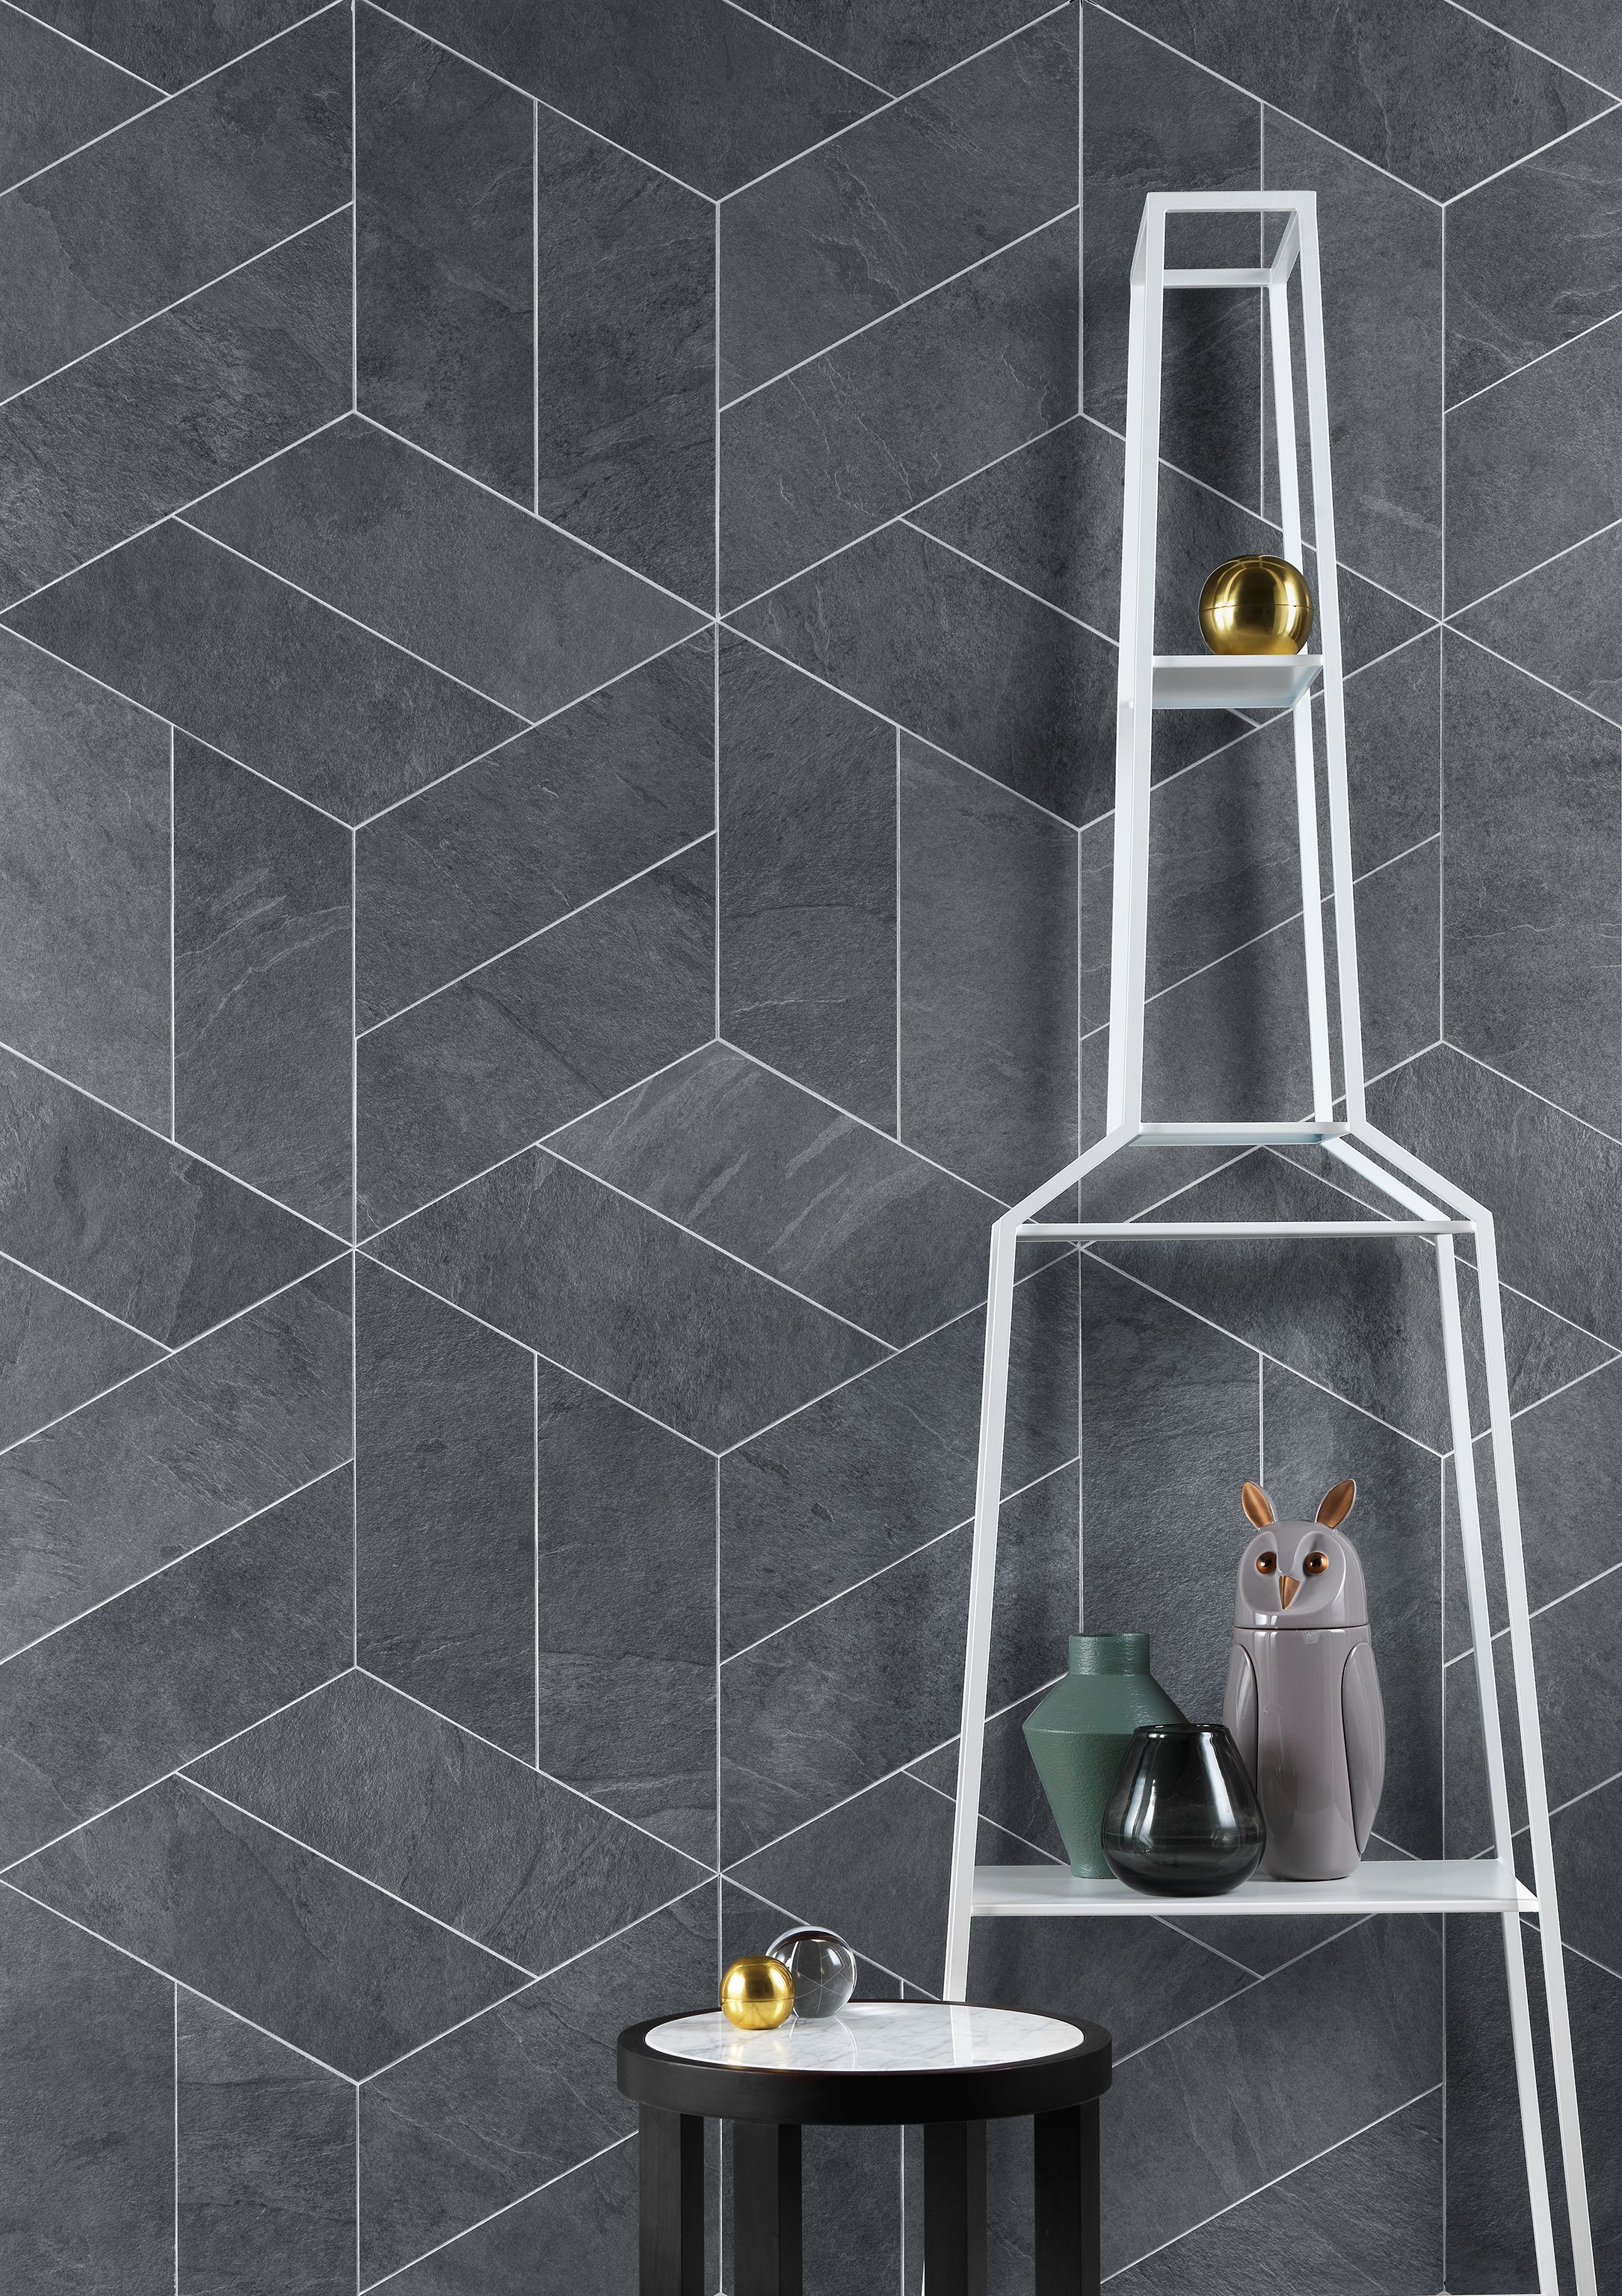 Lea Waterfall Realistically And Physically Represents Slate With Texture Irregularities And Variations Of Color The Gra Tile Trends Chevron Tile Tiles Texture